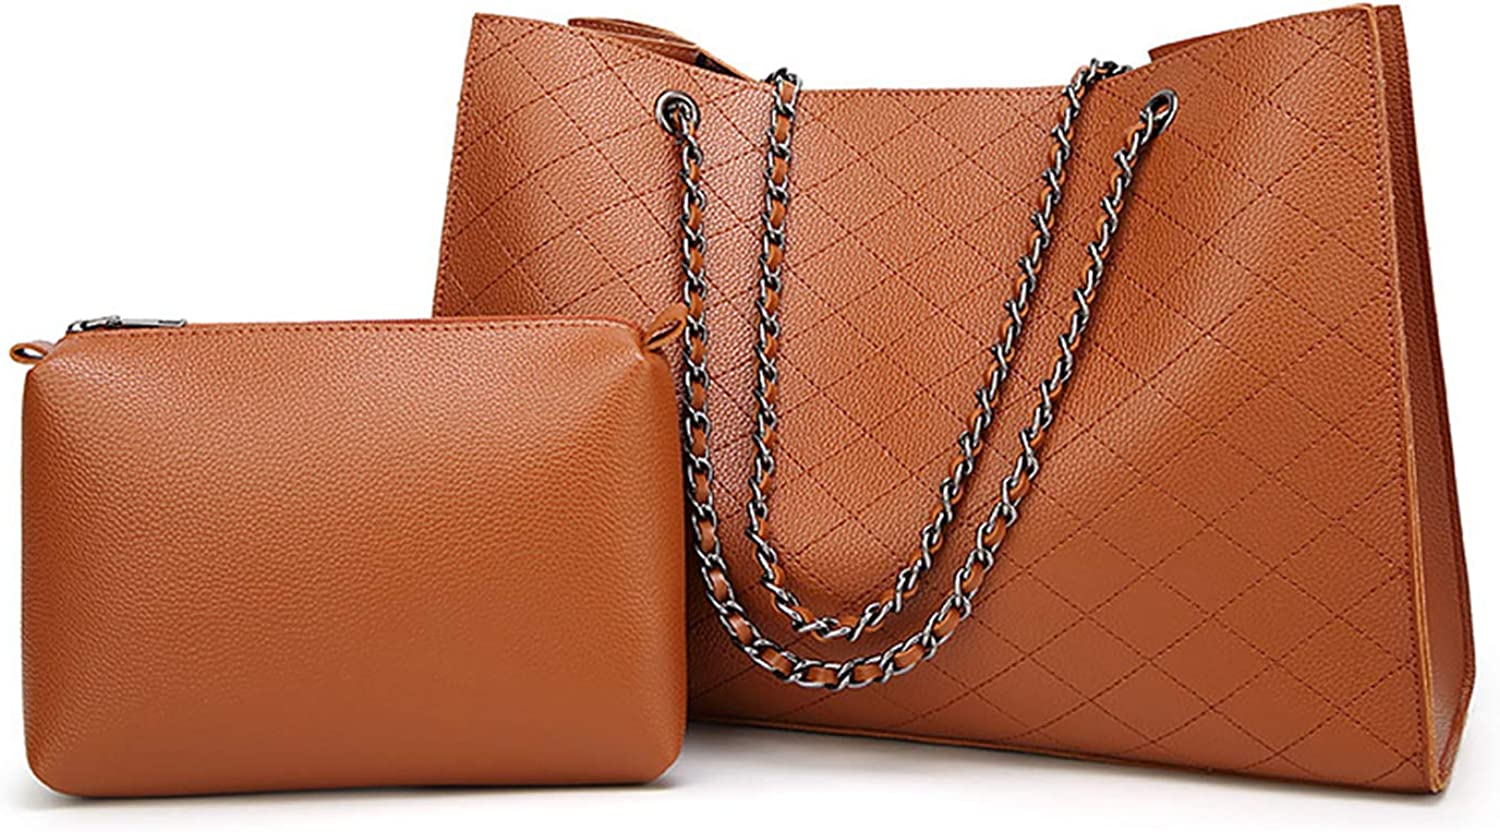 NOTAG Tote Bags for Women Leather Shoulder Handbags with Chain Fashion Ladies Purses with Small Pouch